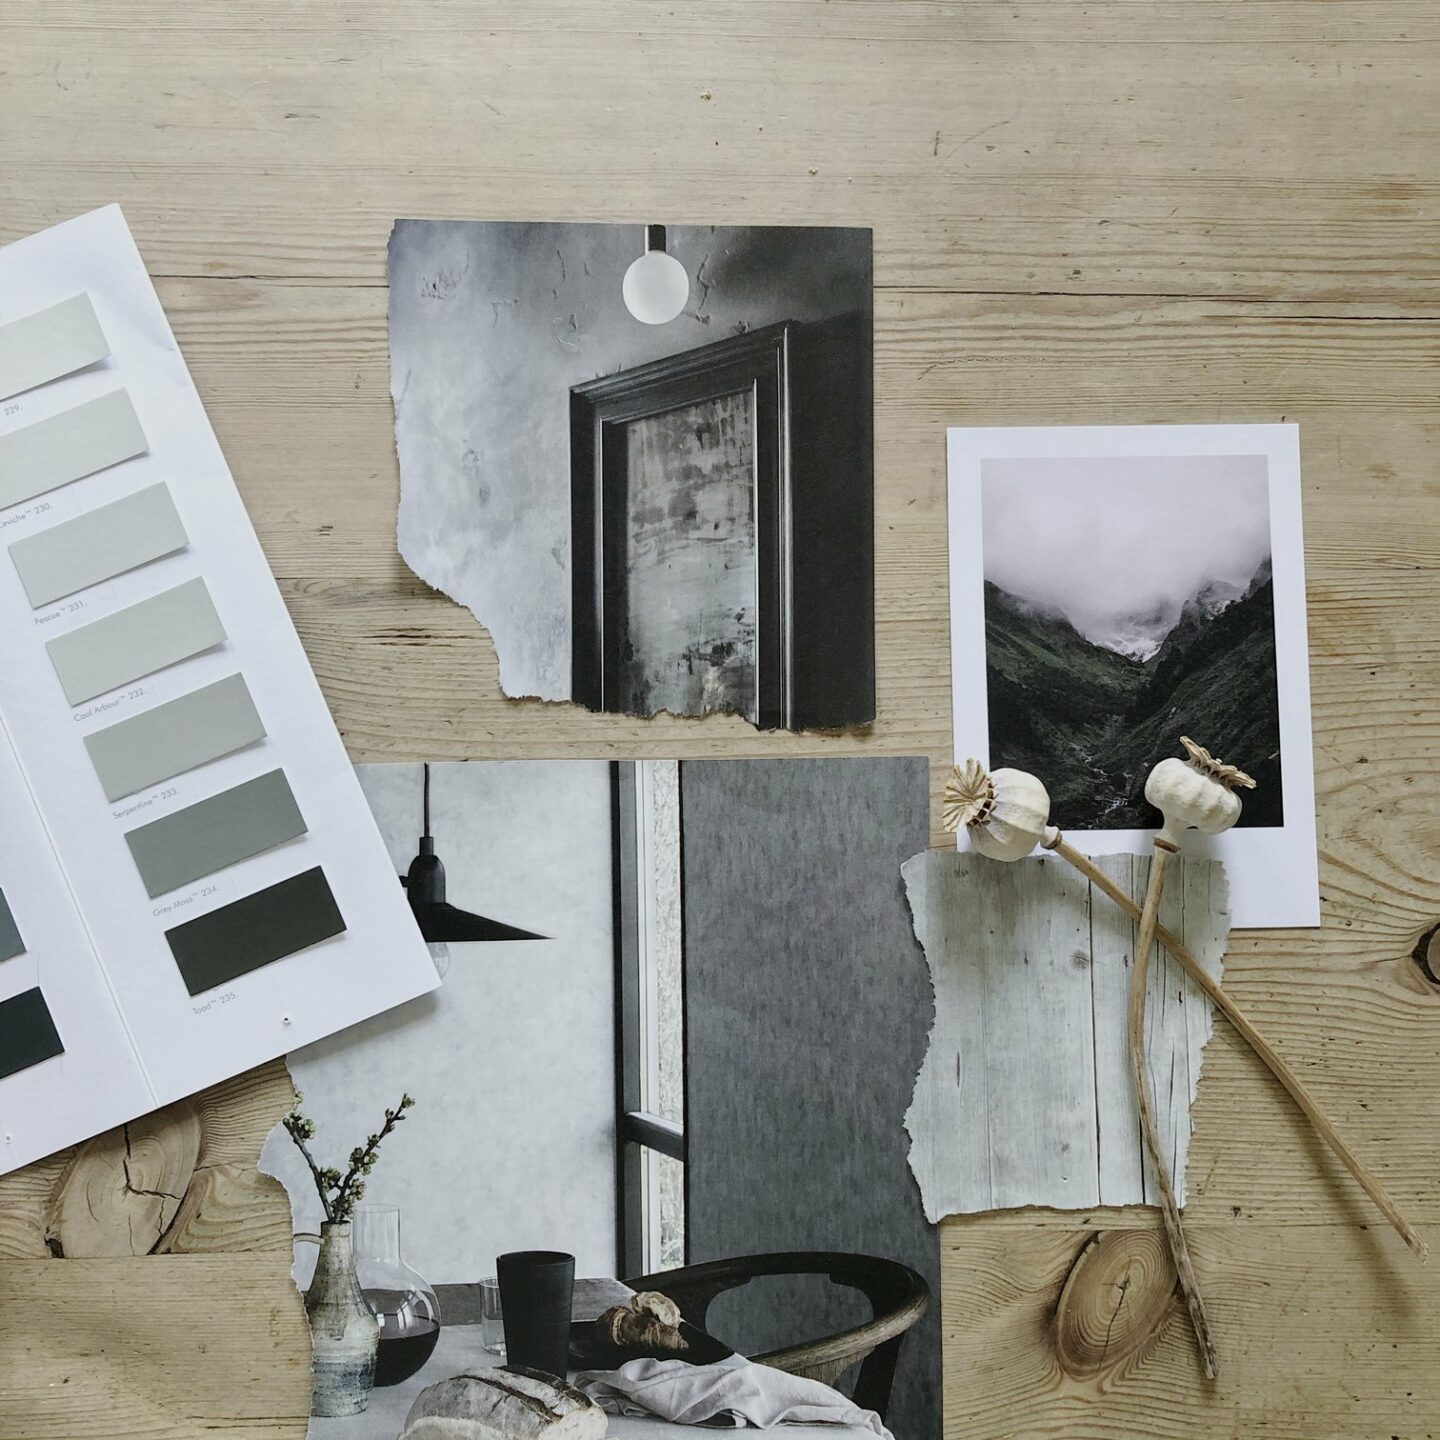 Flatlay moodboard of interiors images